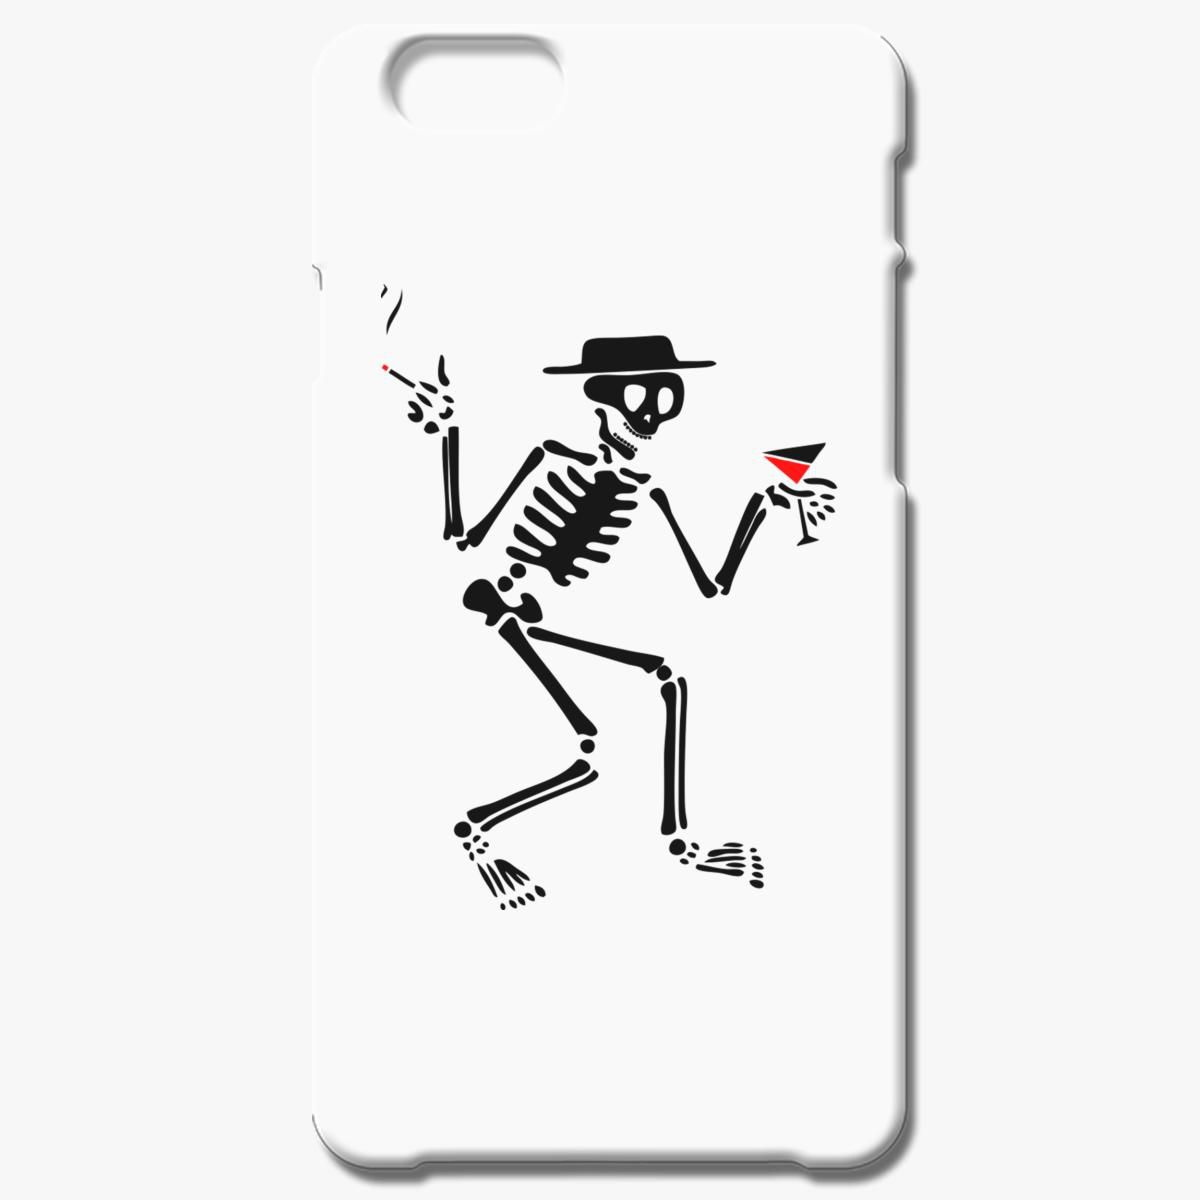 Social Distortion Iphone 6 6s Case